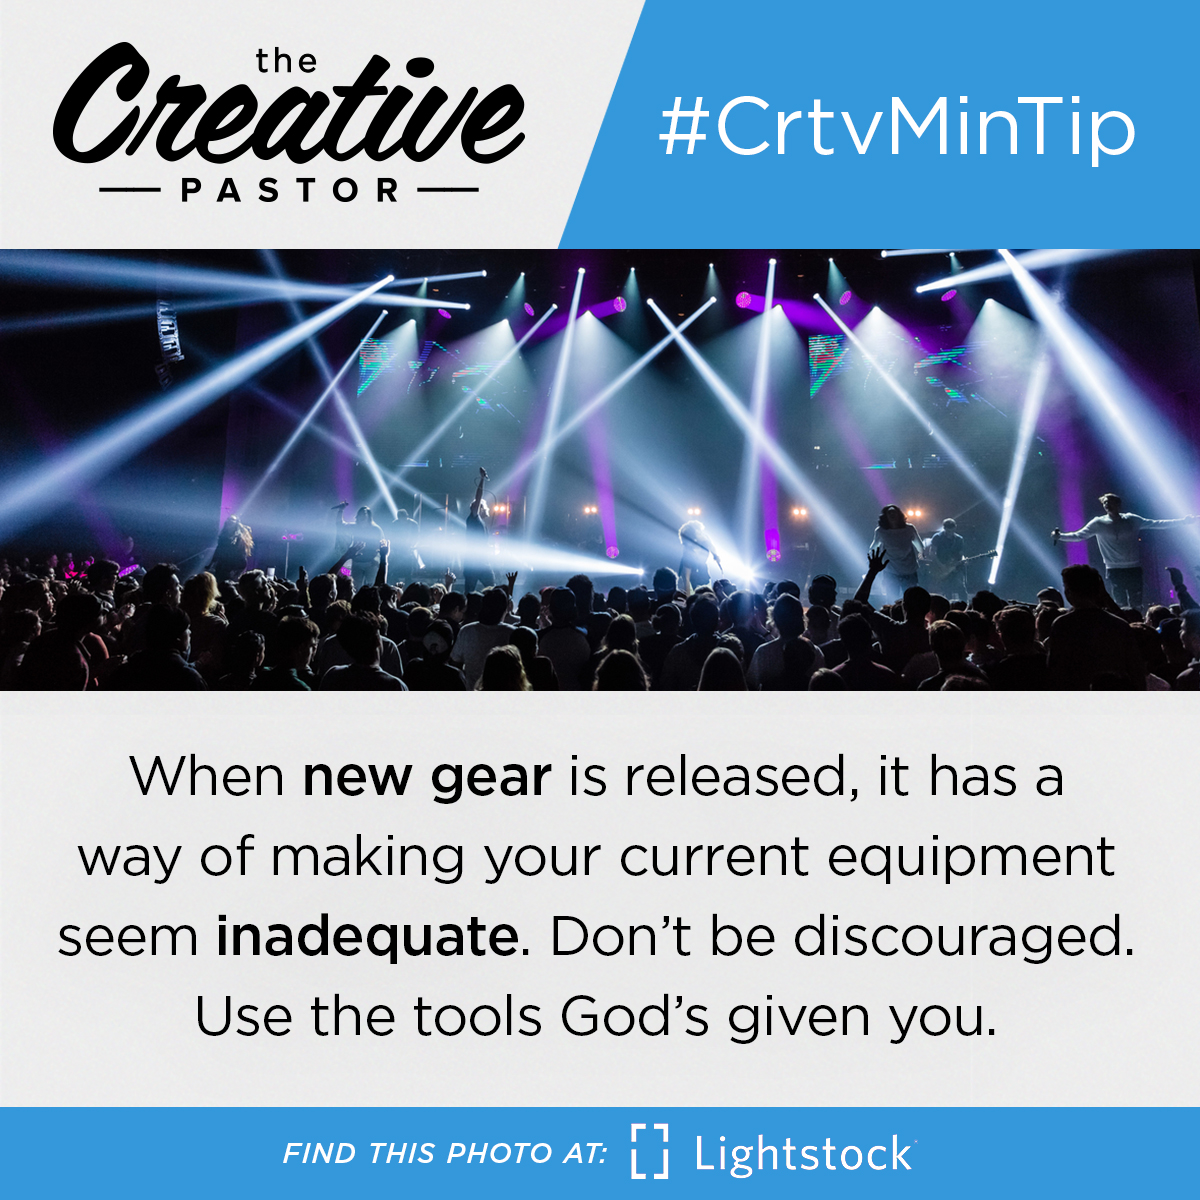 When new gear is released, it has a way of making your current equipment seem inadequate. Don't be discouraged. Use the tools God's given you.